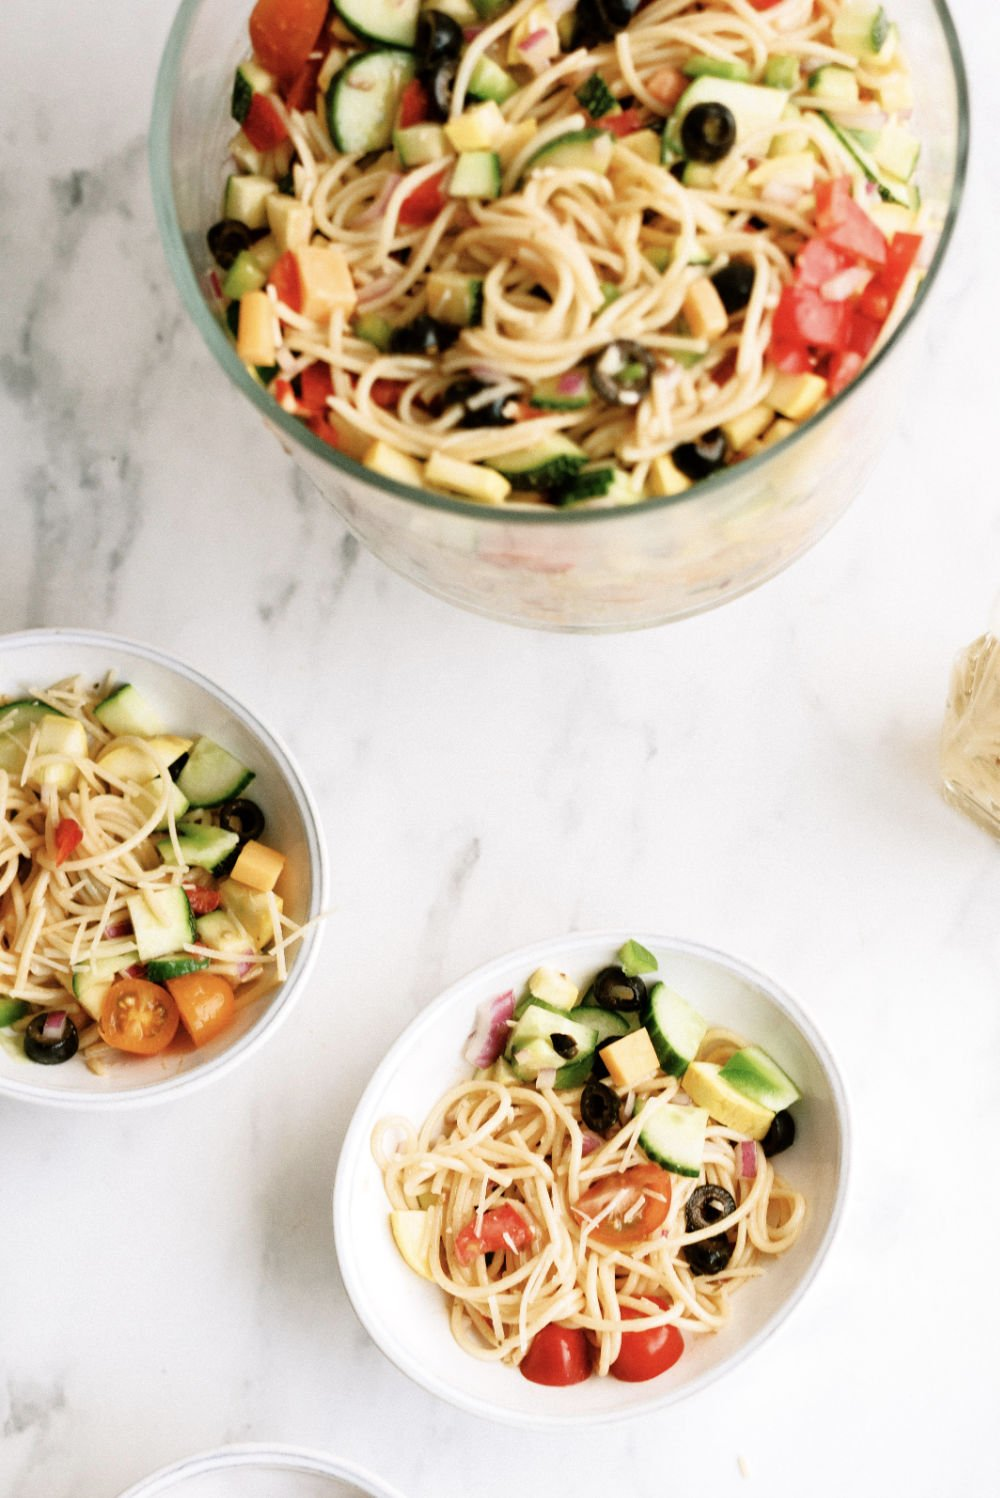 pasta salad with vegetables served in bowls